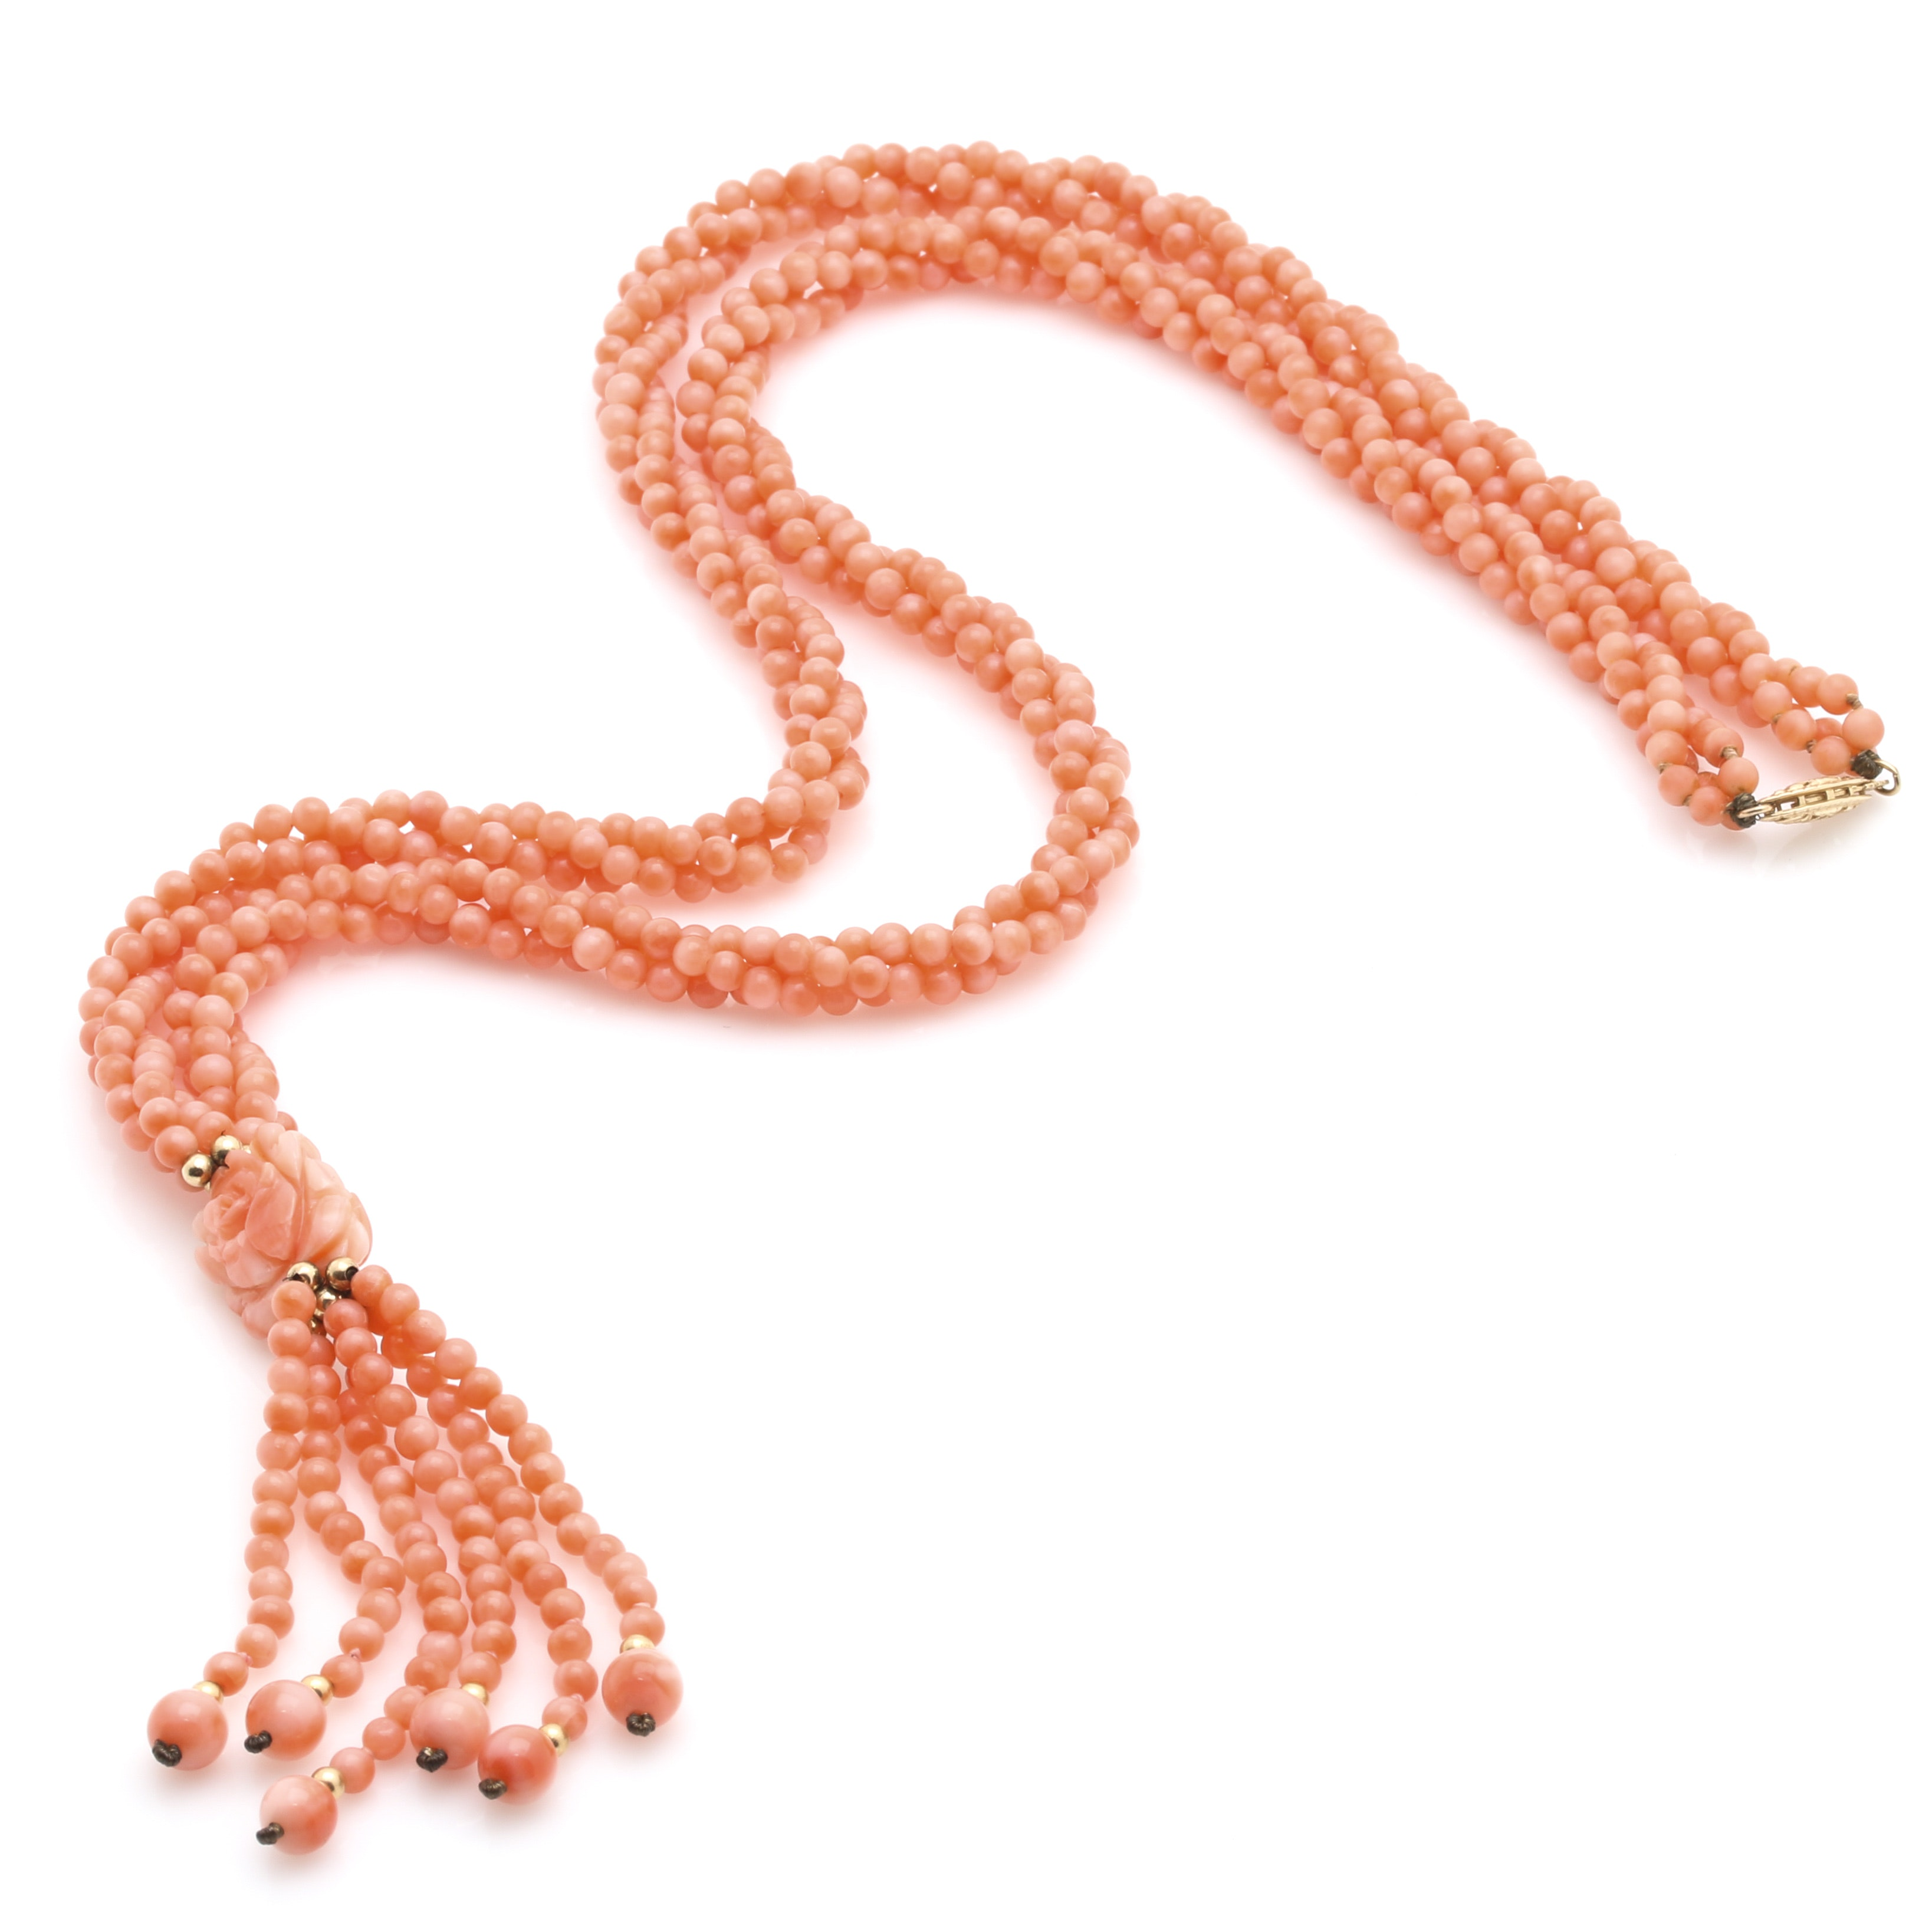 Beaded Coral Necklace with a 14K Yellow Gold Clasp